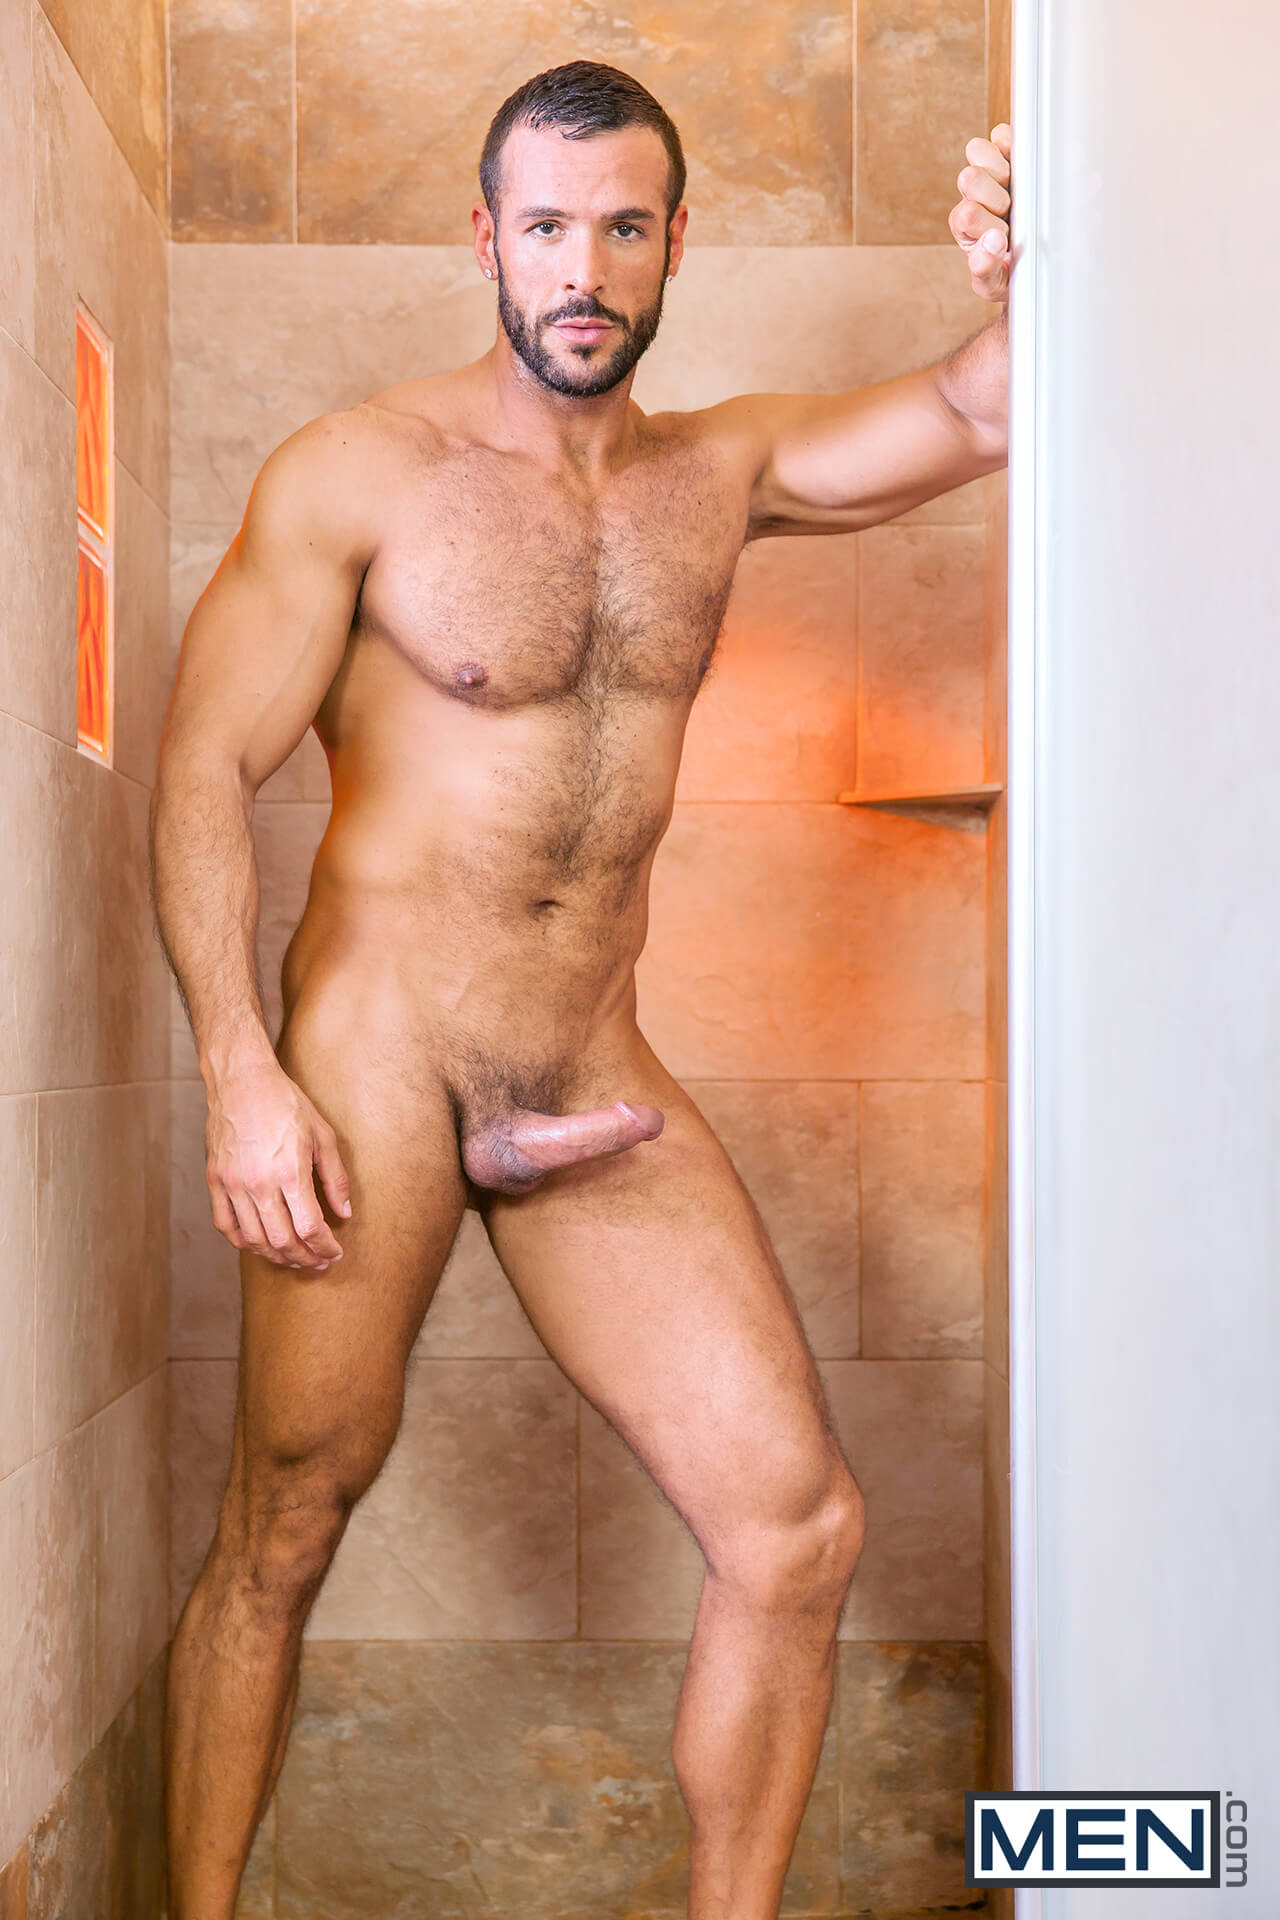 men gods of men unexpected passion denis vega letterio gay porn blog image 7